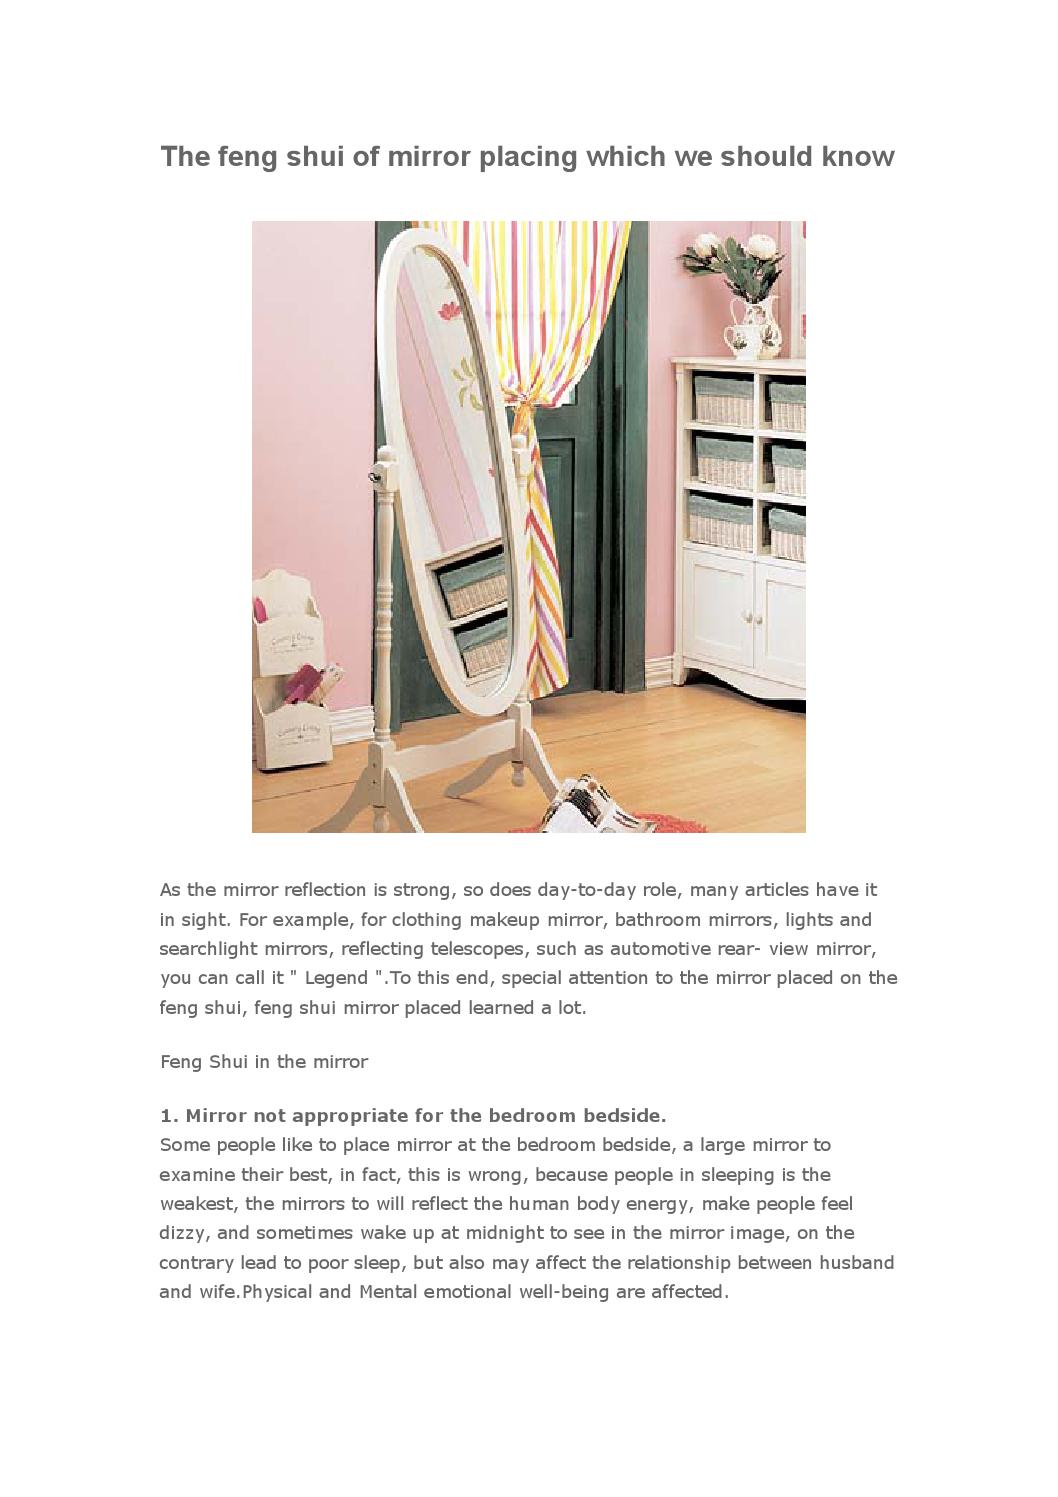 Bad Feng Shui Mirror Placement The Feng Shui Of Mirror Placing Which We Should Know By